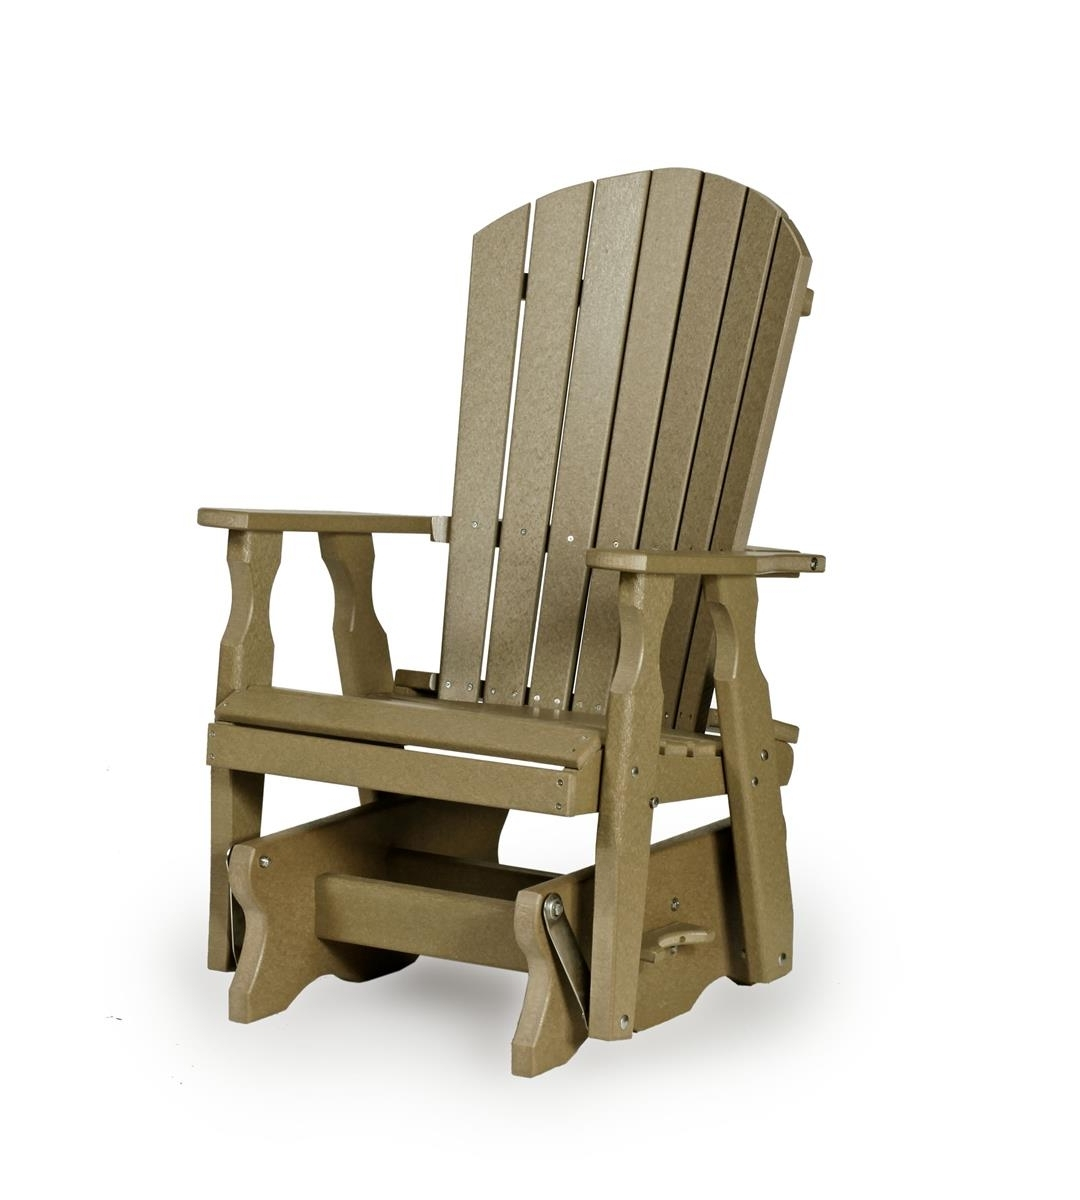 Rocking Chairs For Outside Regarding Most Recent Rocking Chairs For Outside Incredible Chair On Porch Home Design (View 14 of 20)